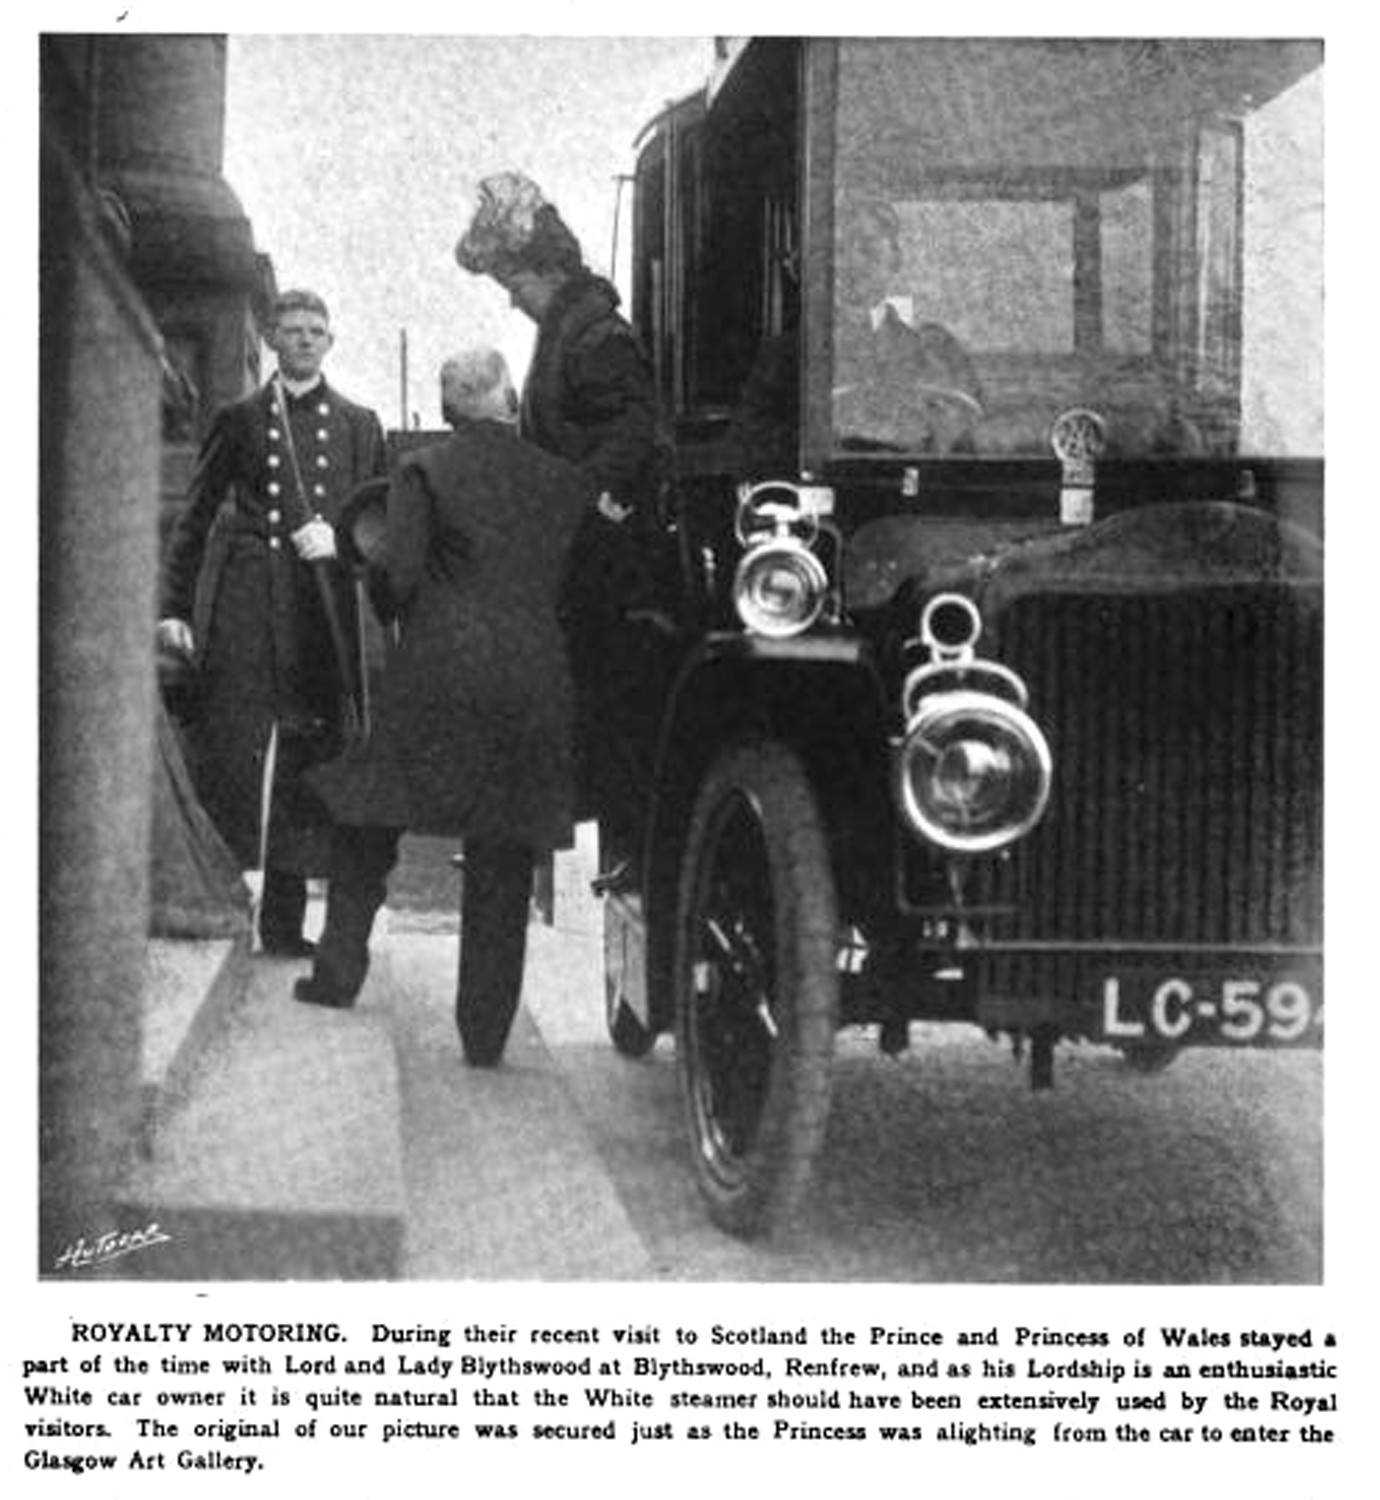 MOTORING. THE AUTOCAR 11 OCTOBER 1929 ISSUE